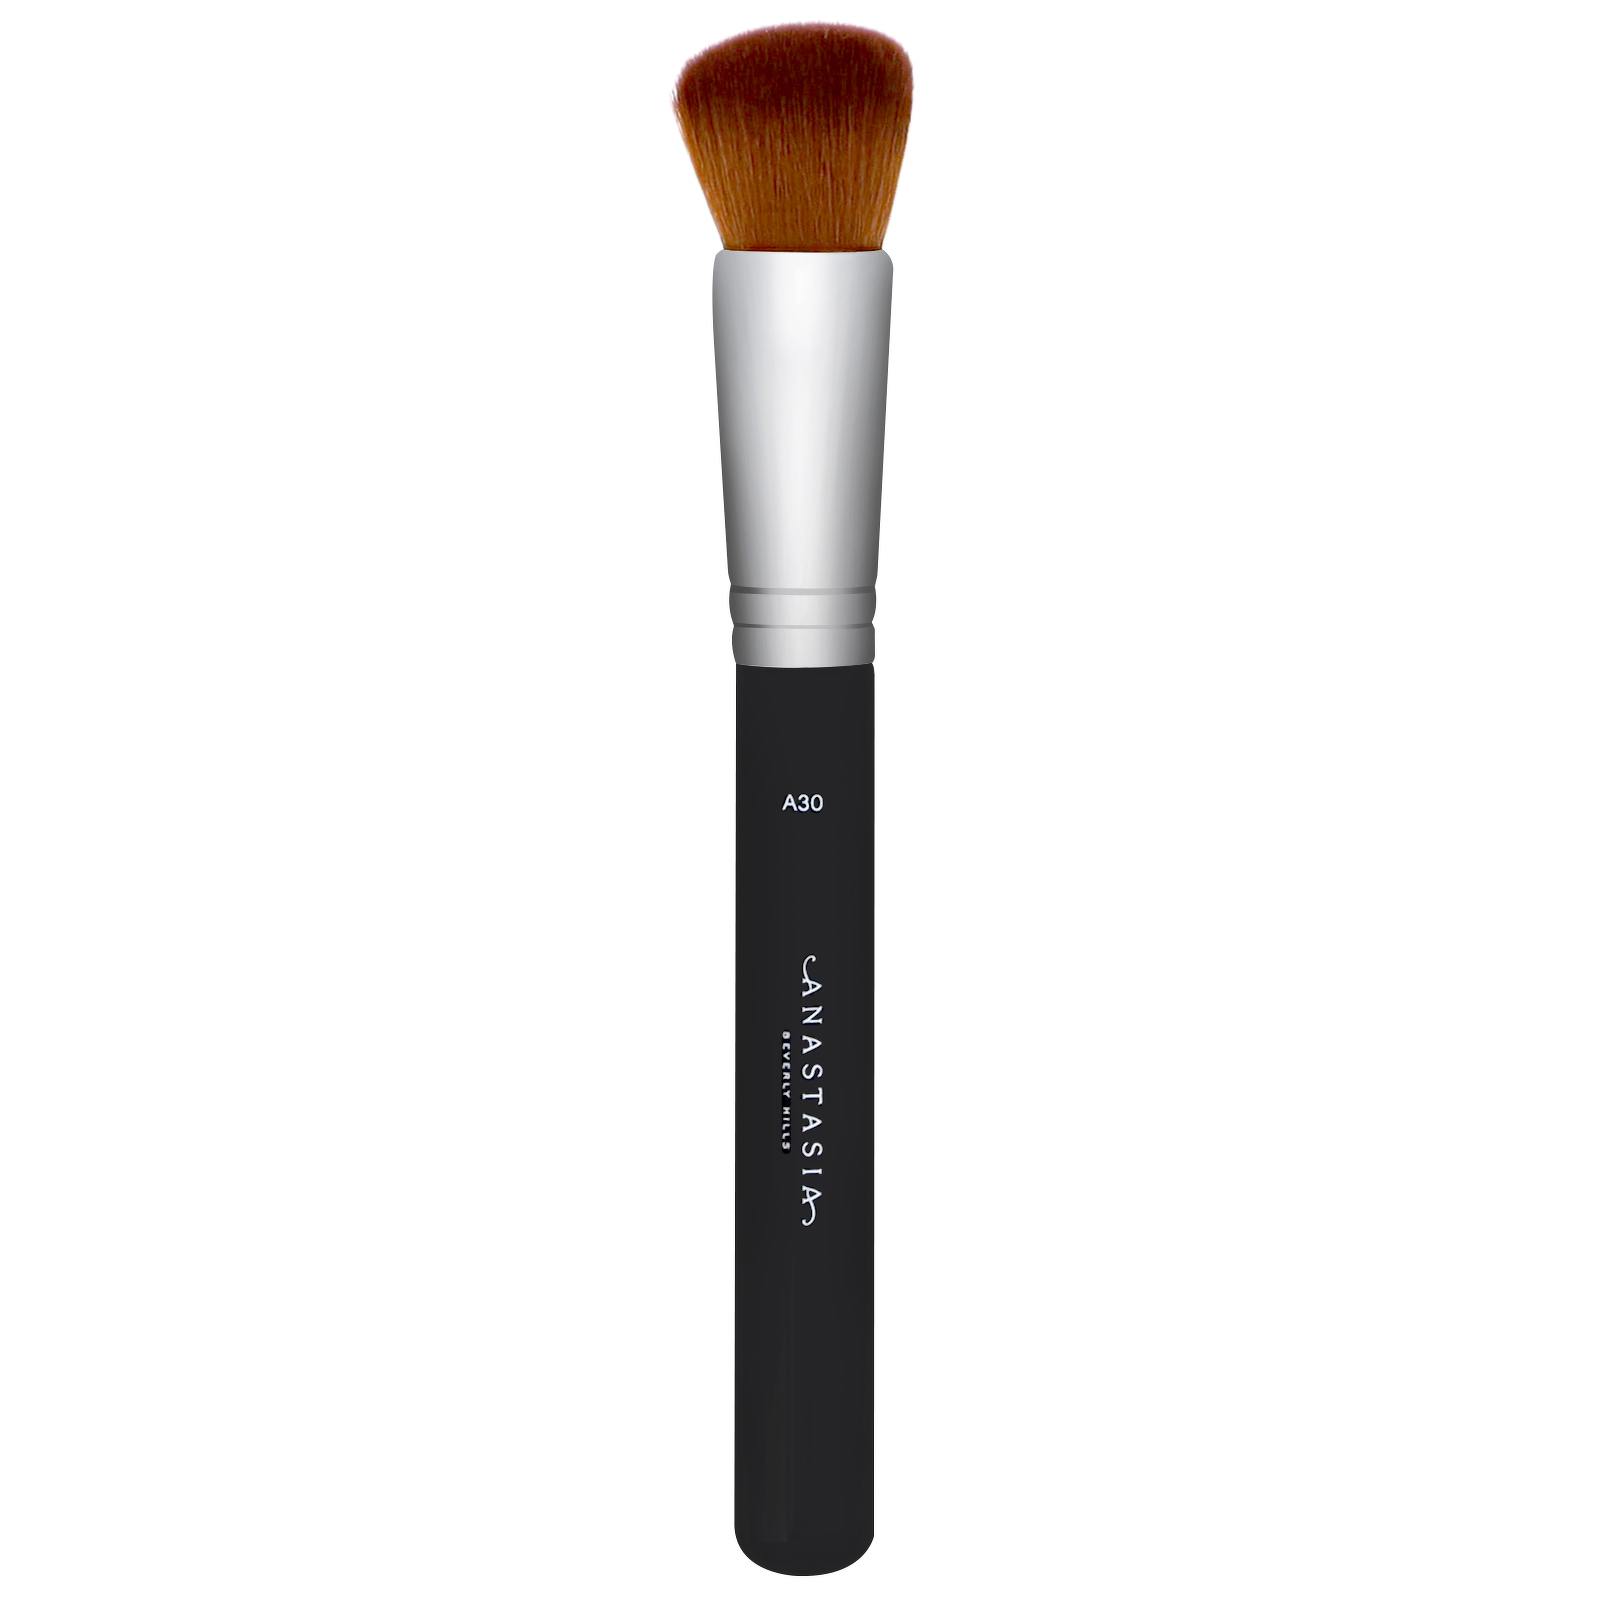 ANASTASIA BEVERLY HILLS Makeup Brushes A30 Domed Kabuki Brush